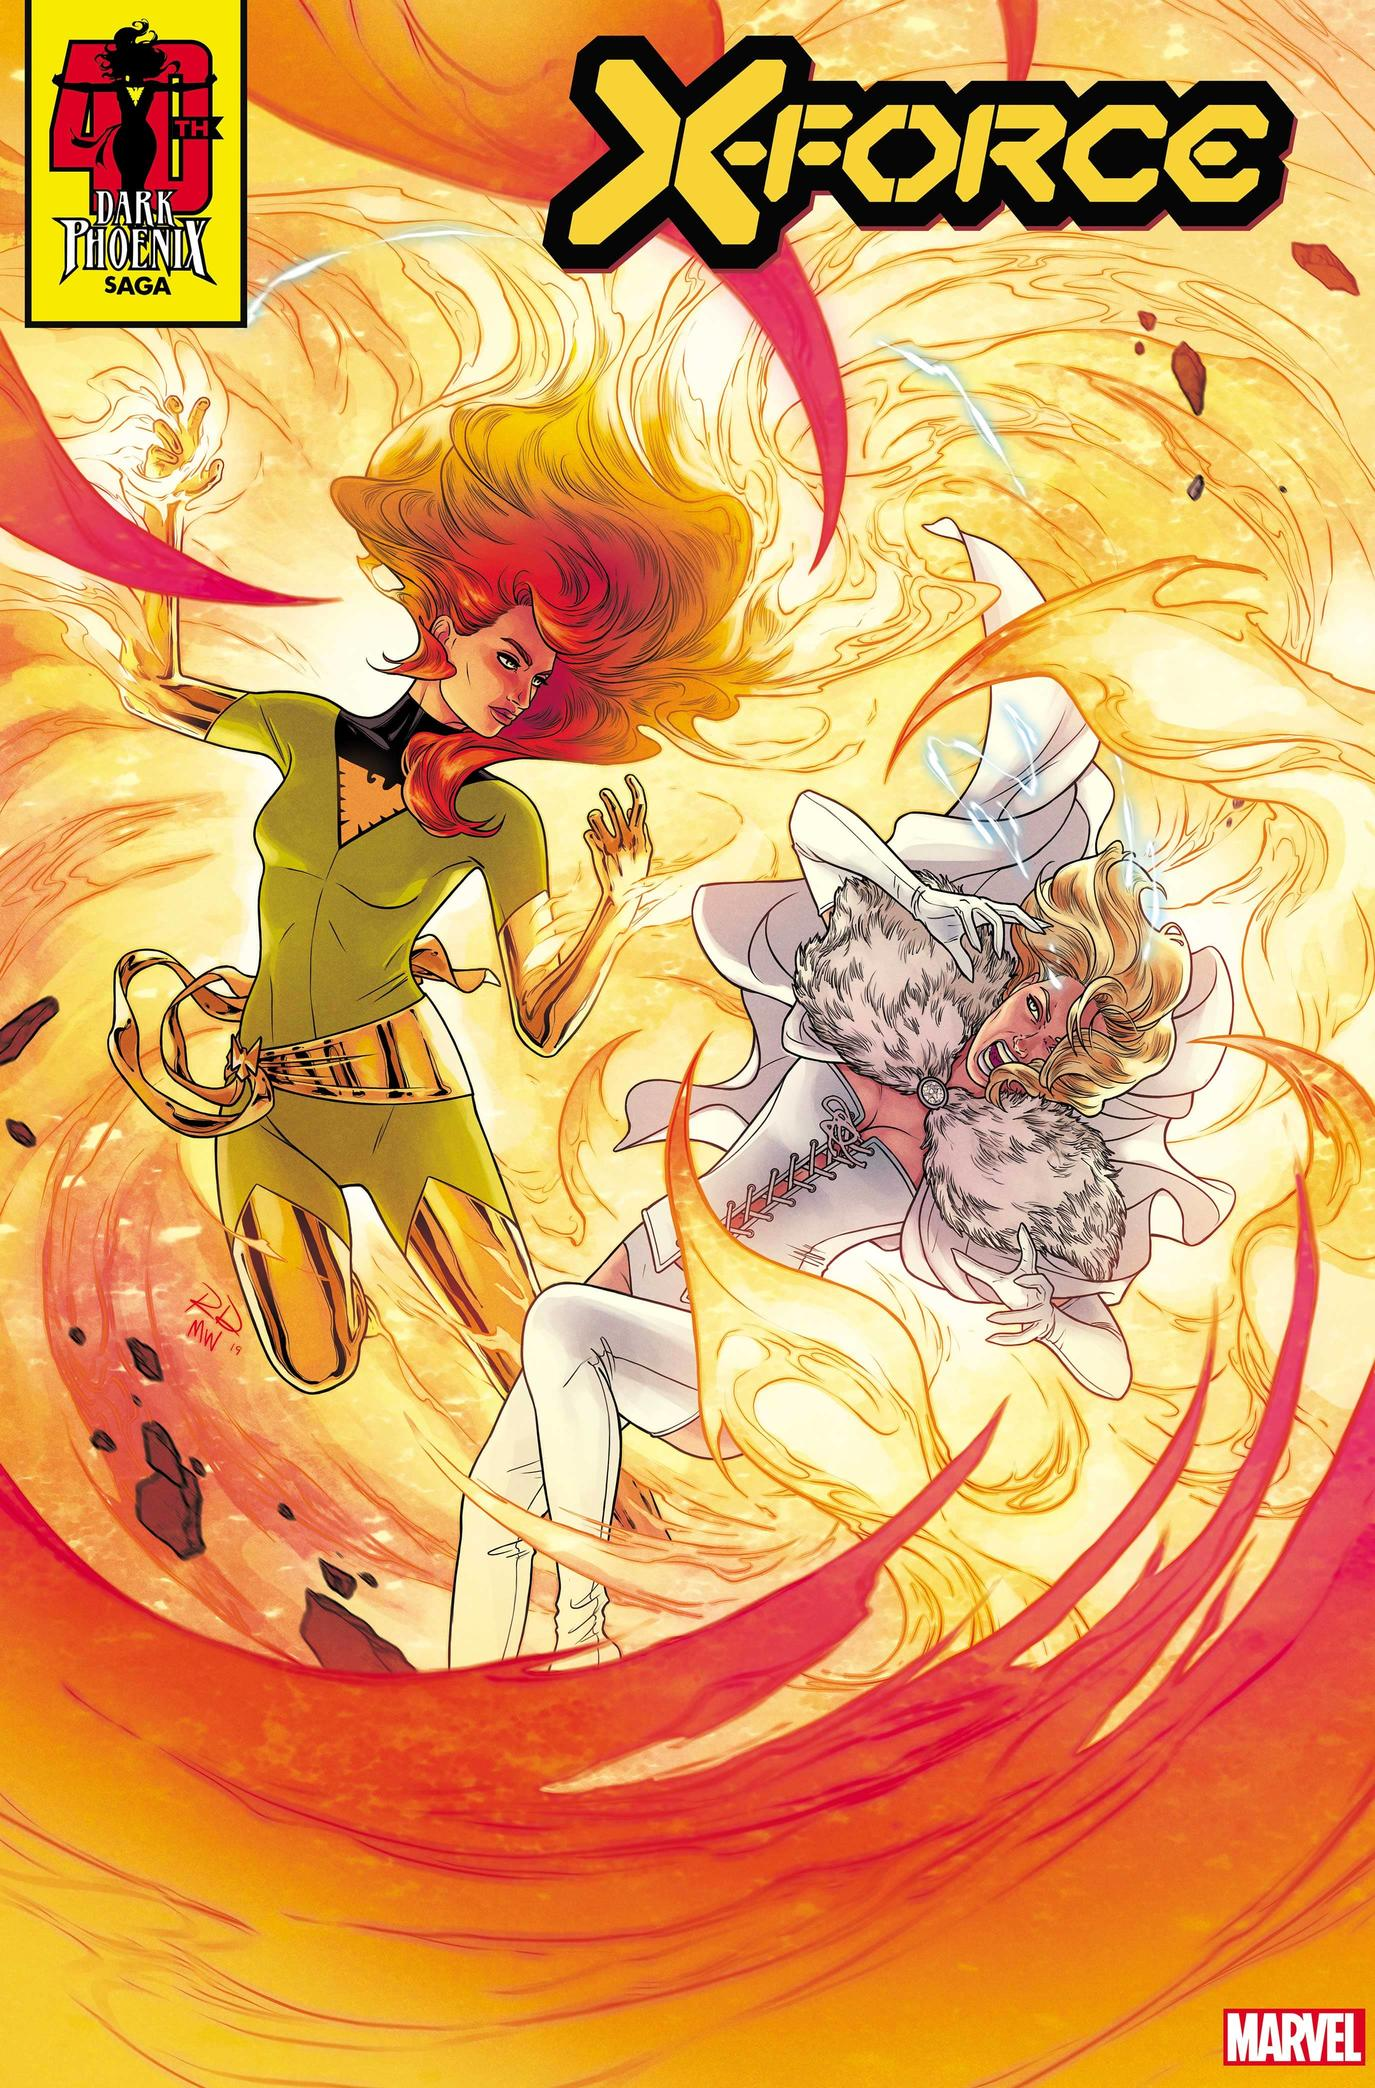 X-FORCE #5 DARK PHOENIX SAGA 40TH ANNIVERSARY VARIANT